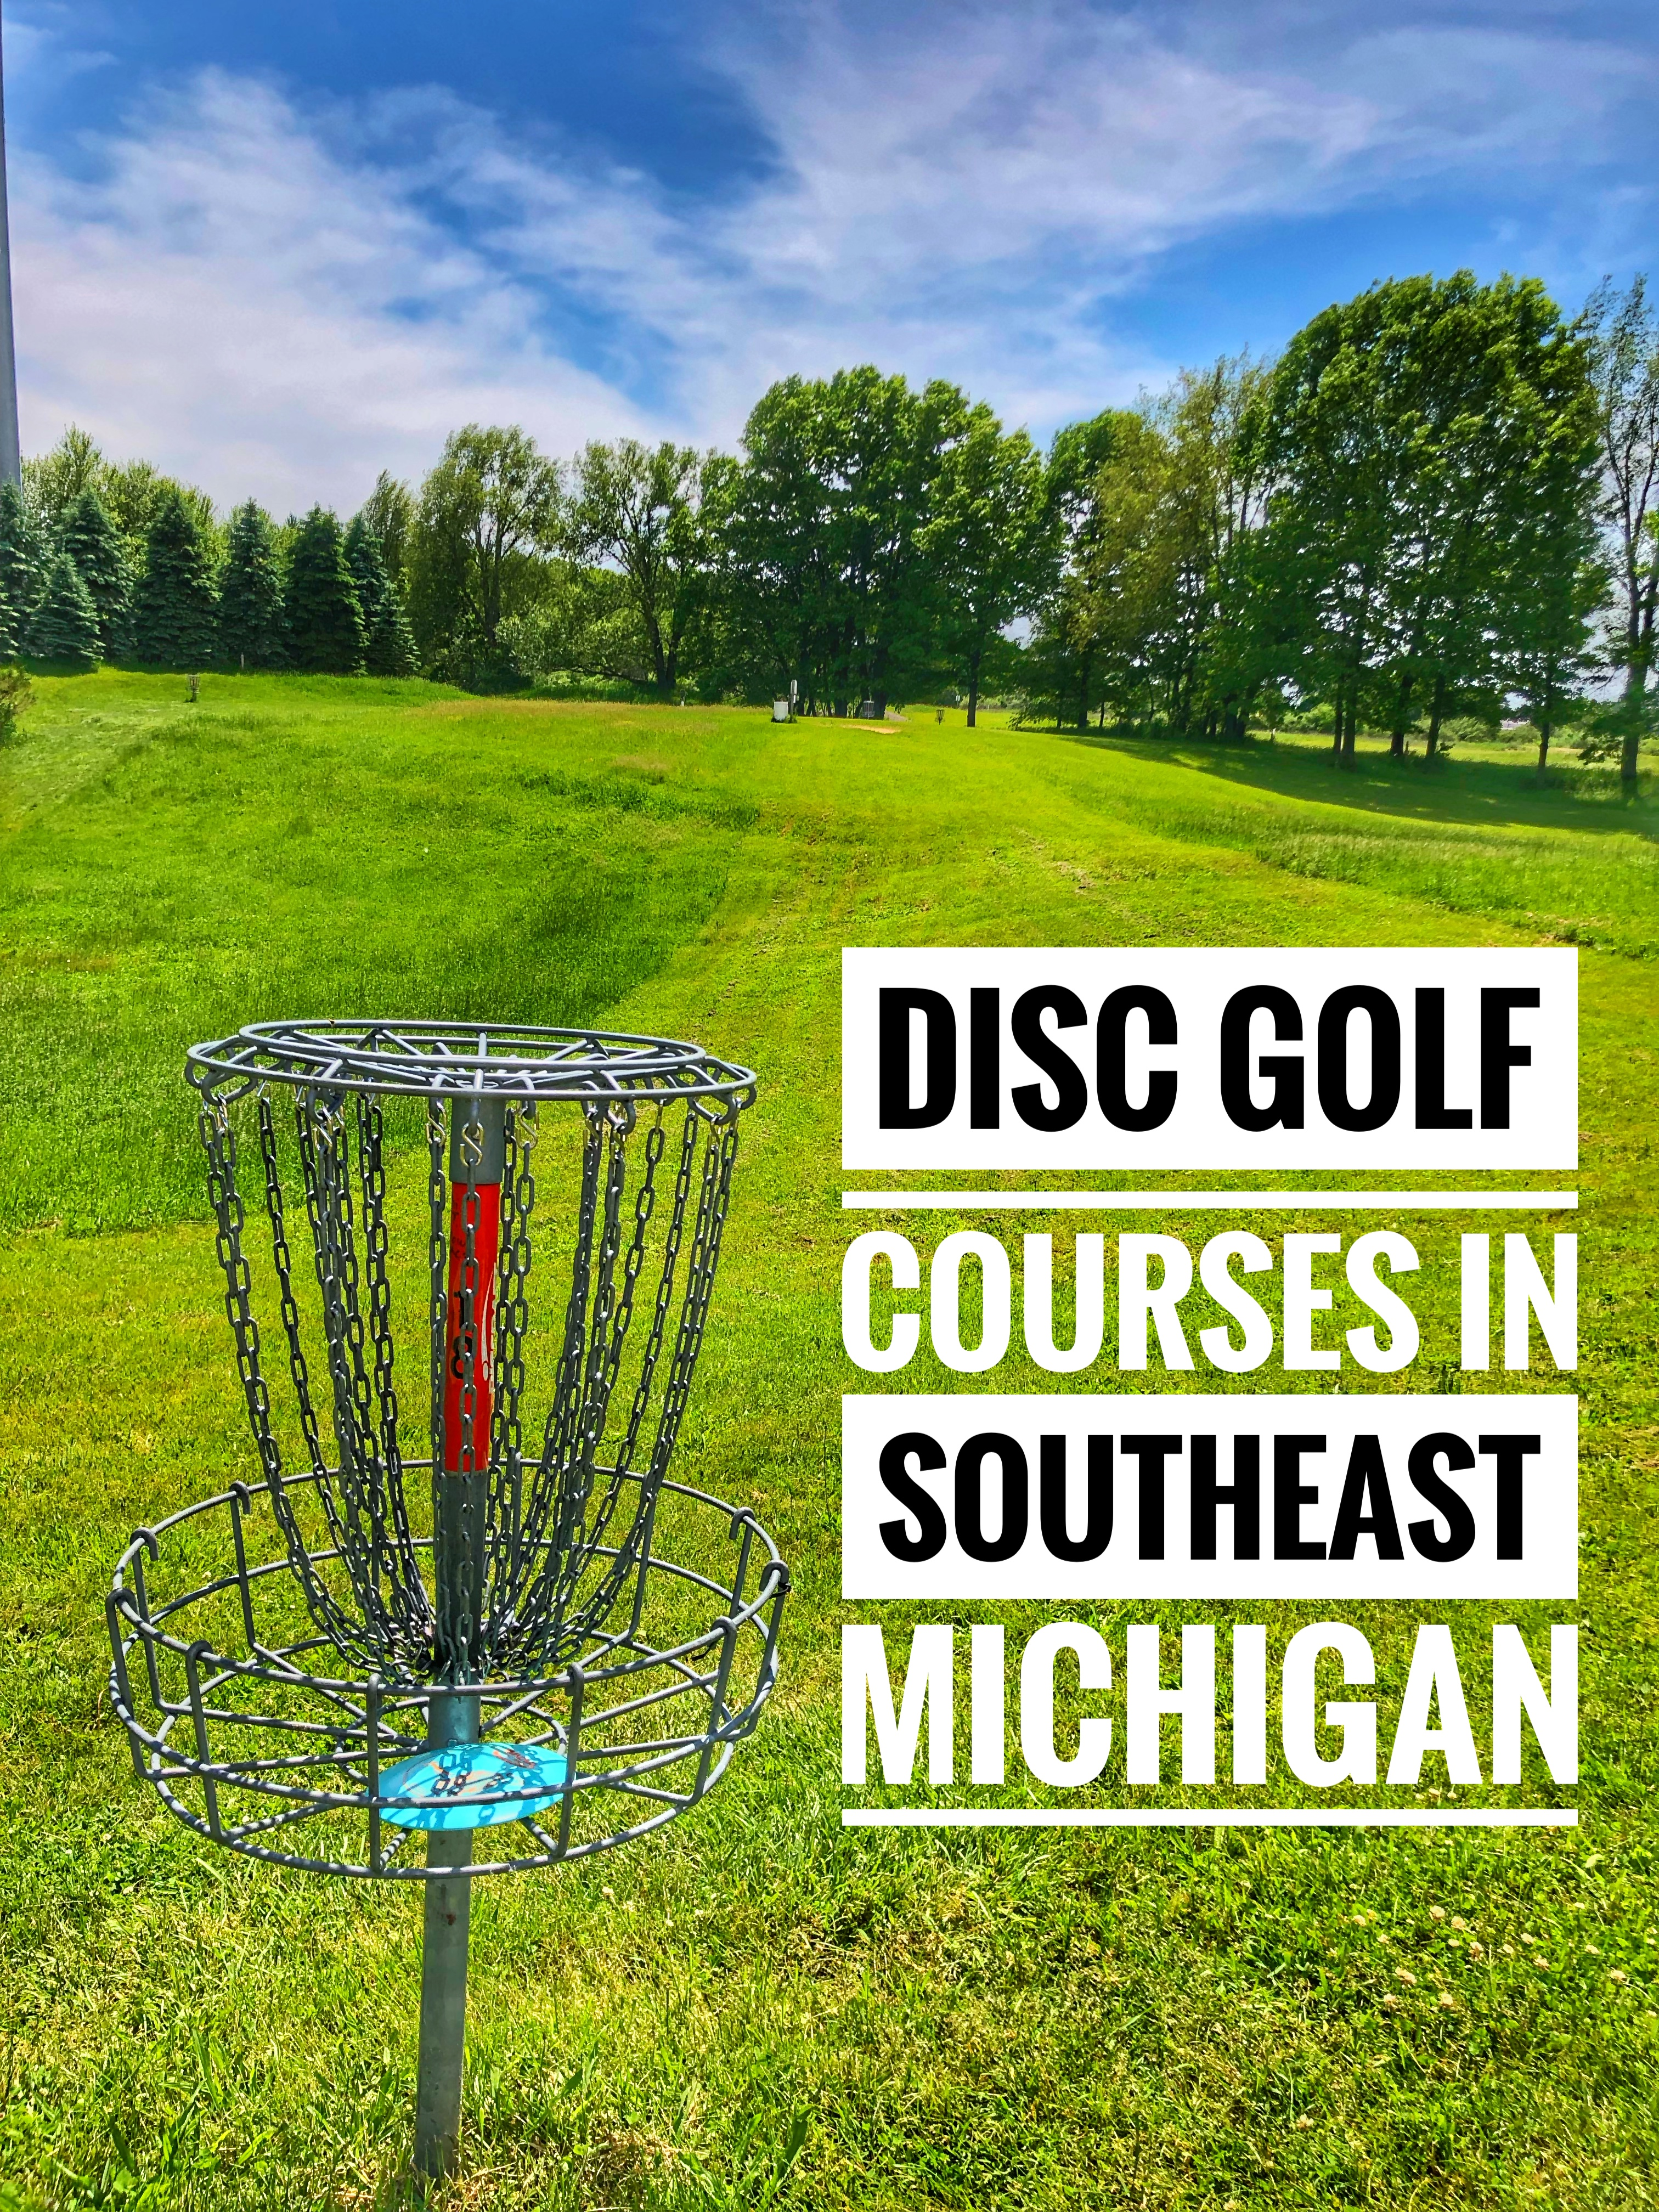 Get Outside And Play Disc Golf Courses In Southeast Michigan Mrs Weber S Neighborhood